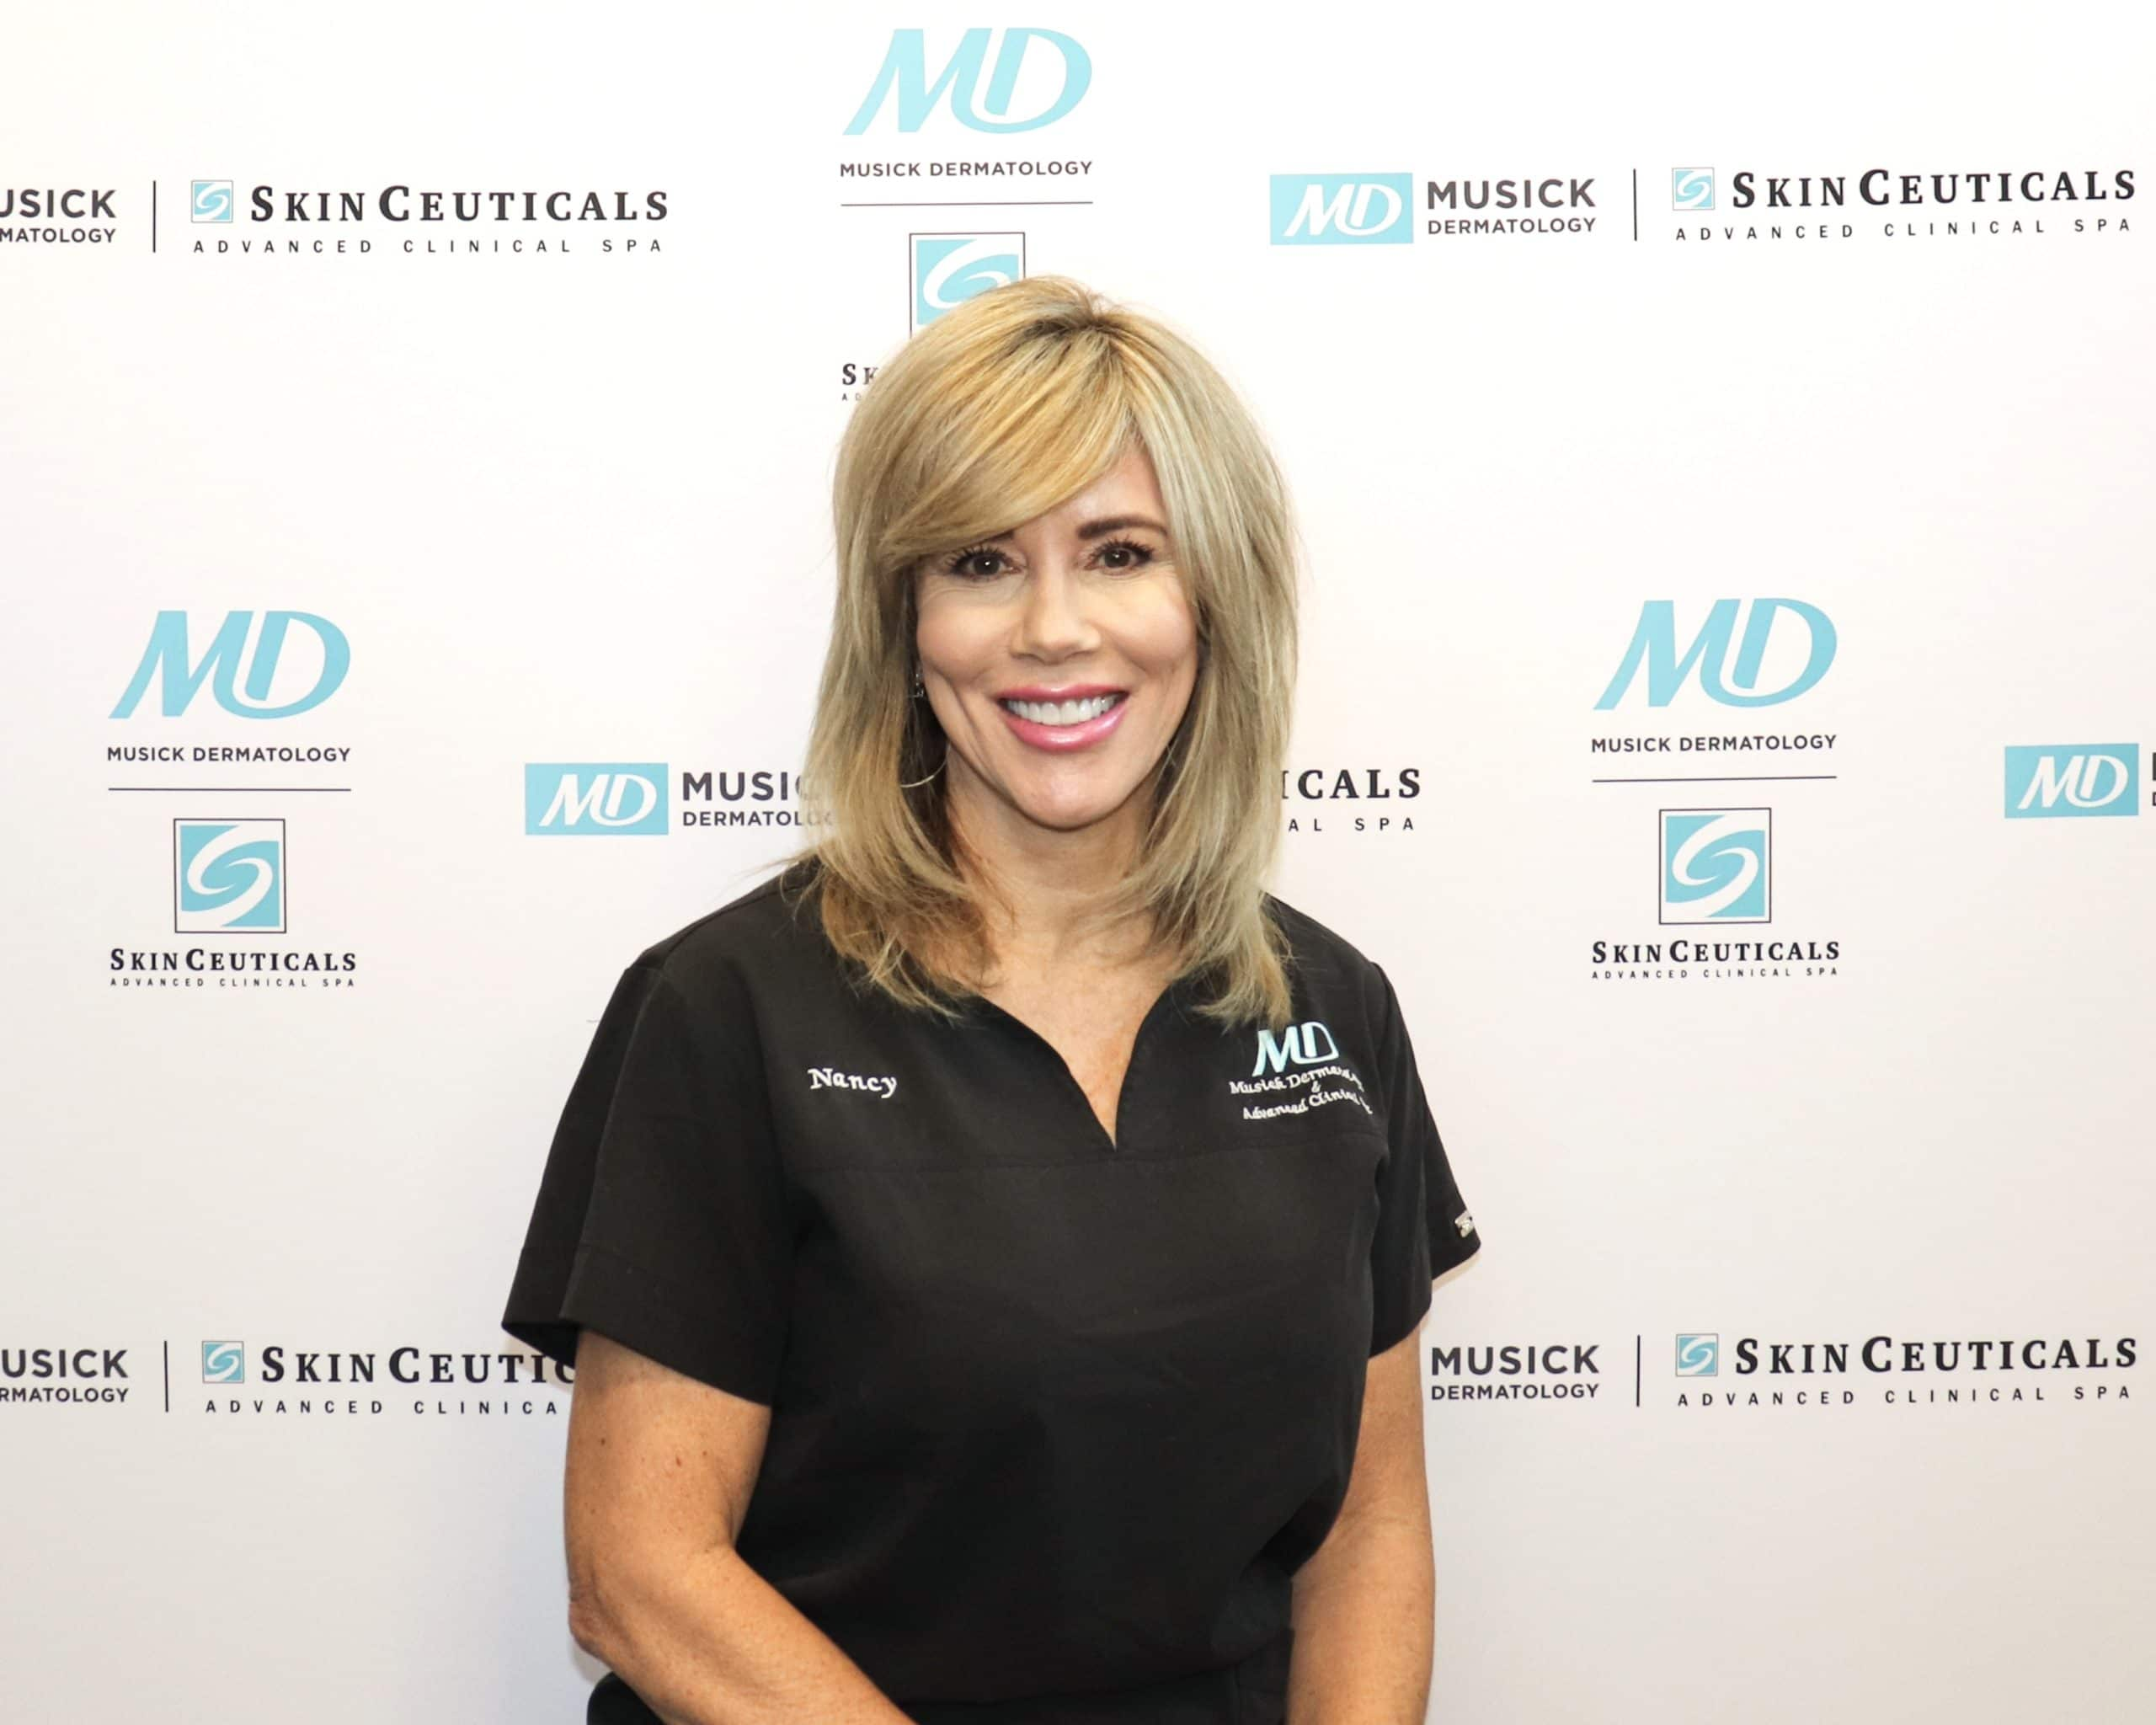 Nancy | Musick Dermatology